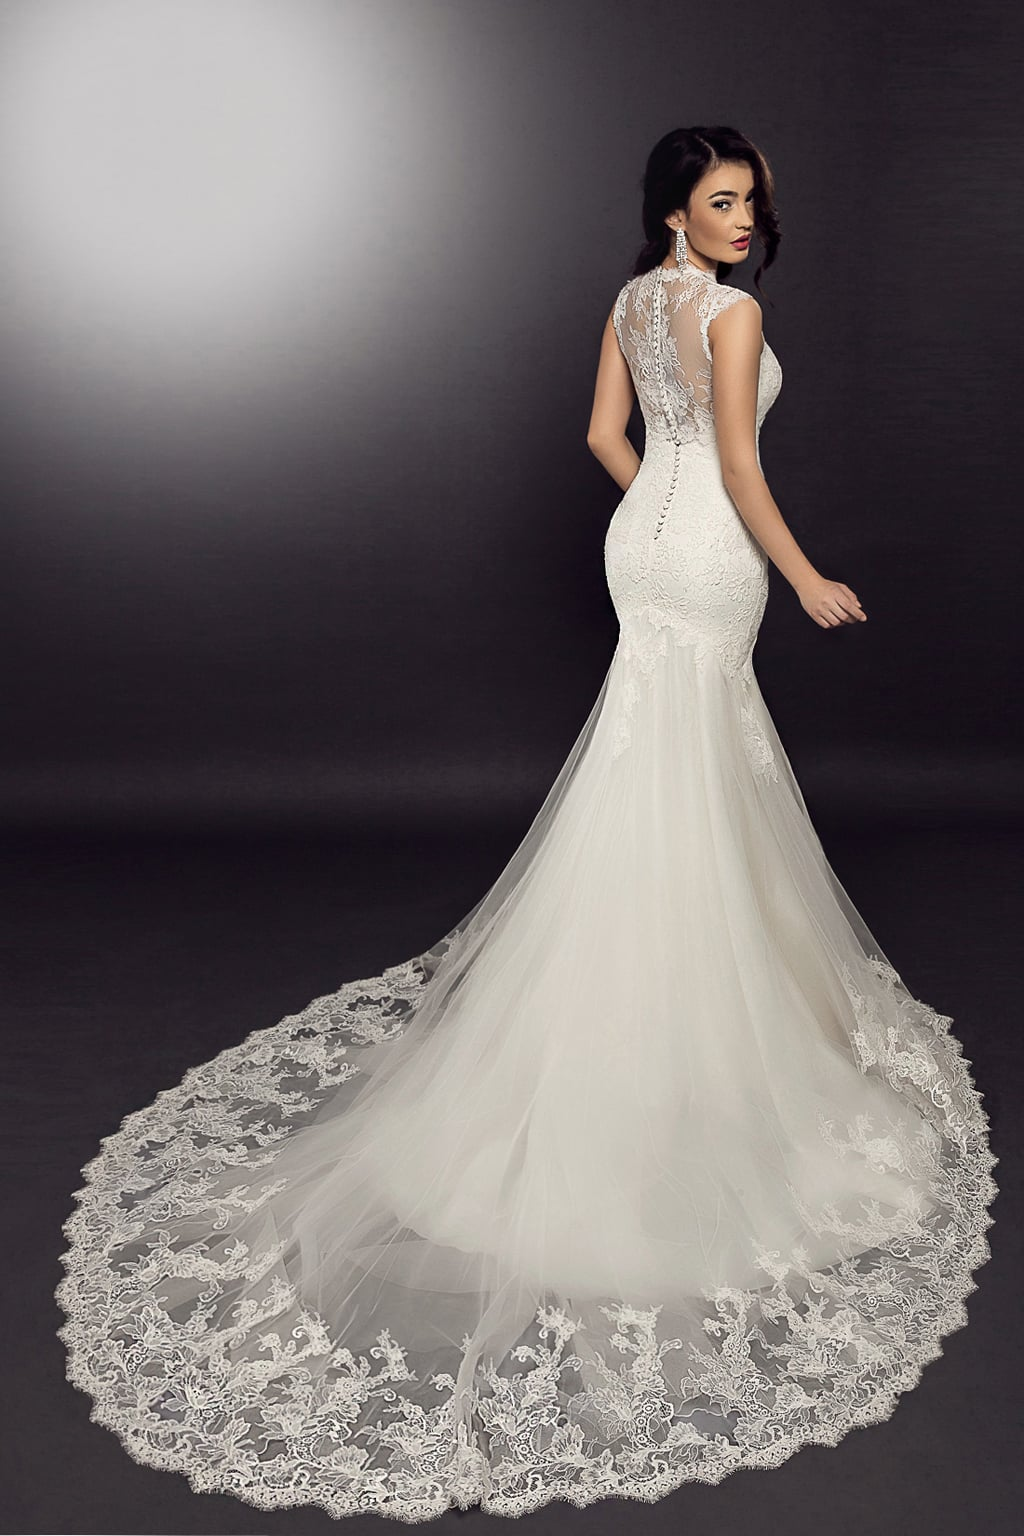 Pandora Model - Colectia Dreams - Adora Sposa (2)